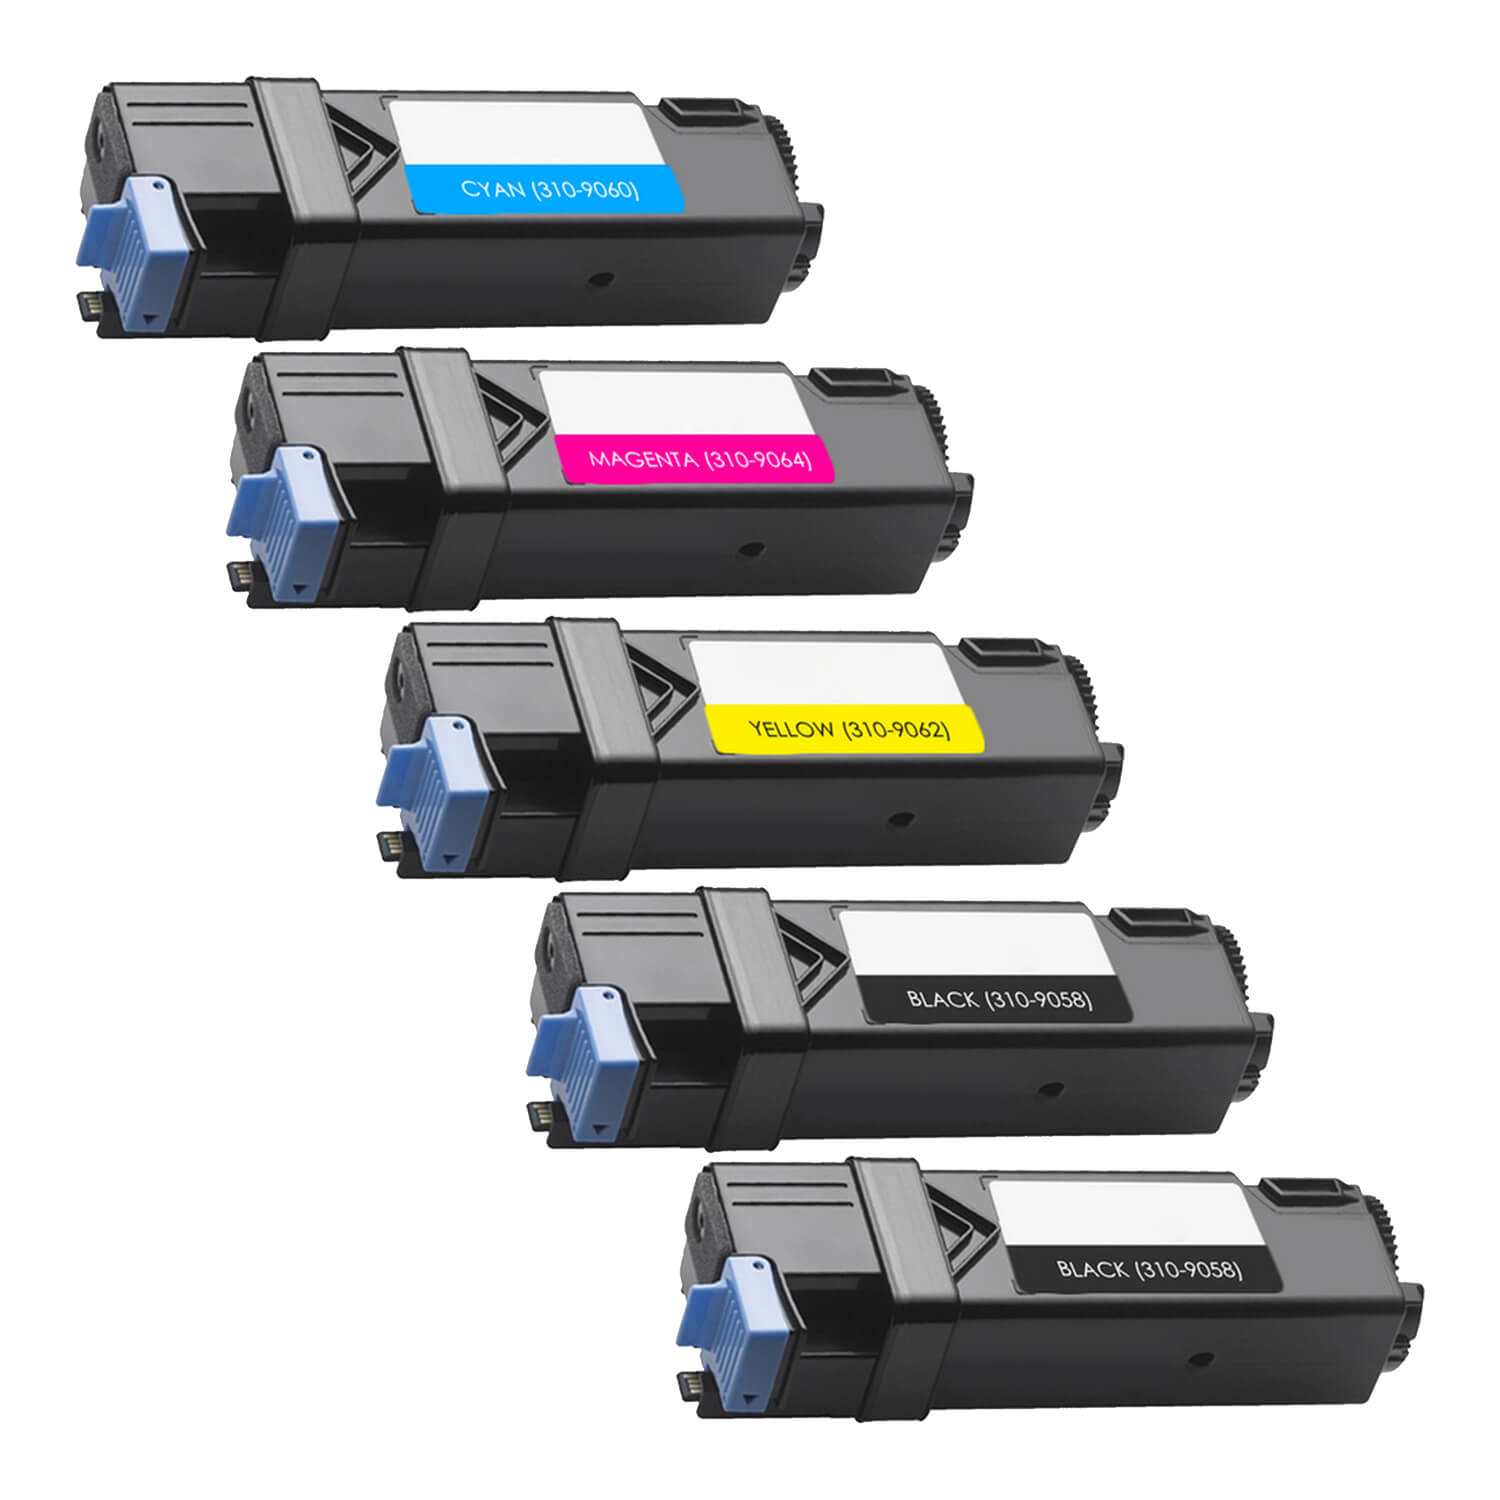 Remanufactured Xerox 6125 Toner Pack - 5 Cartridges